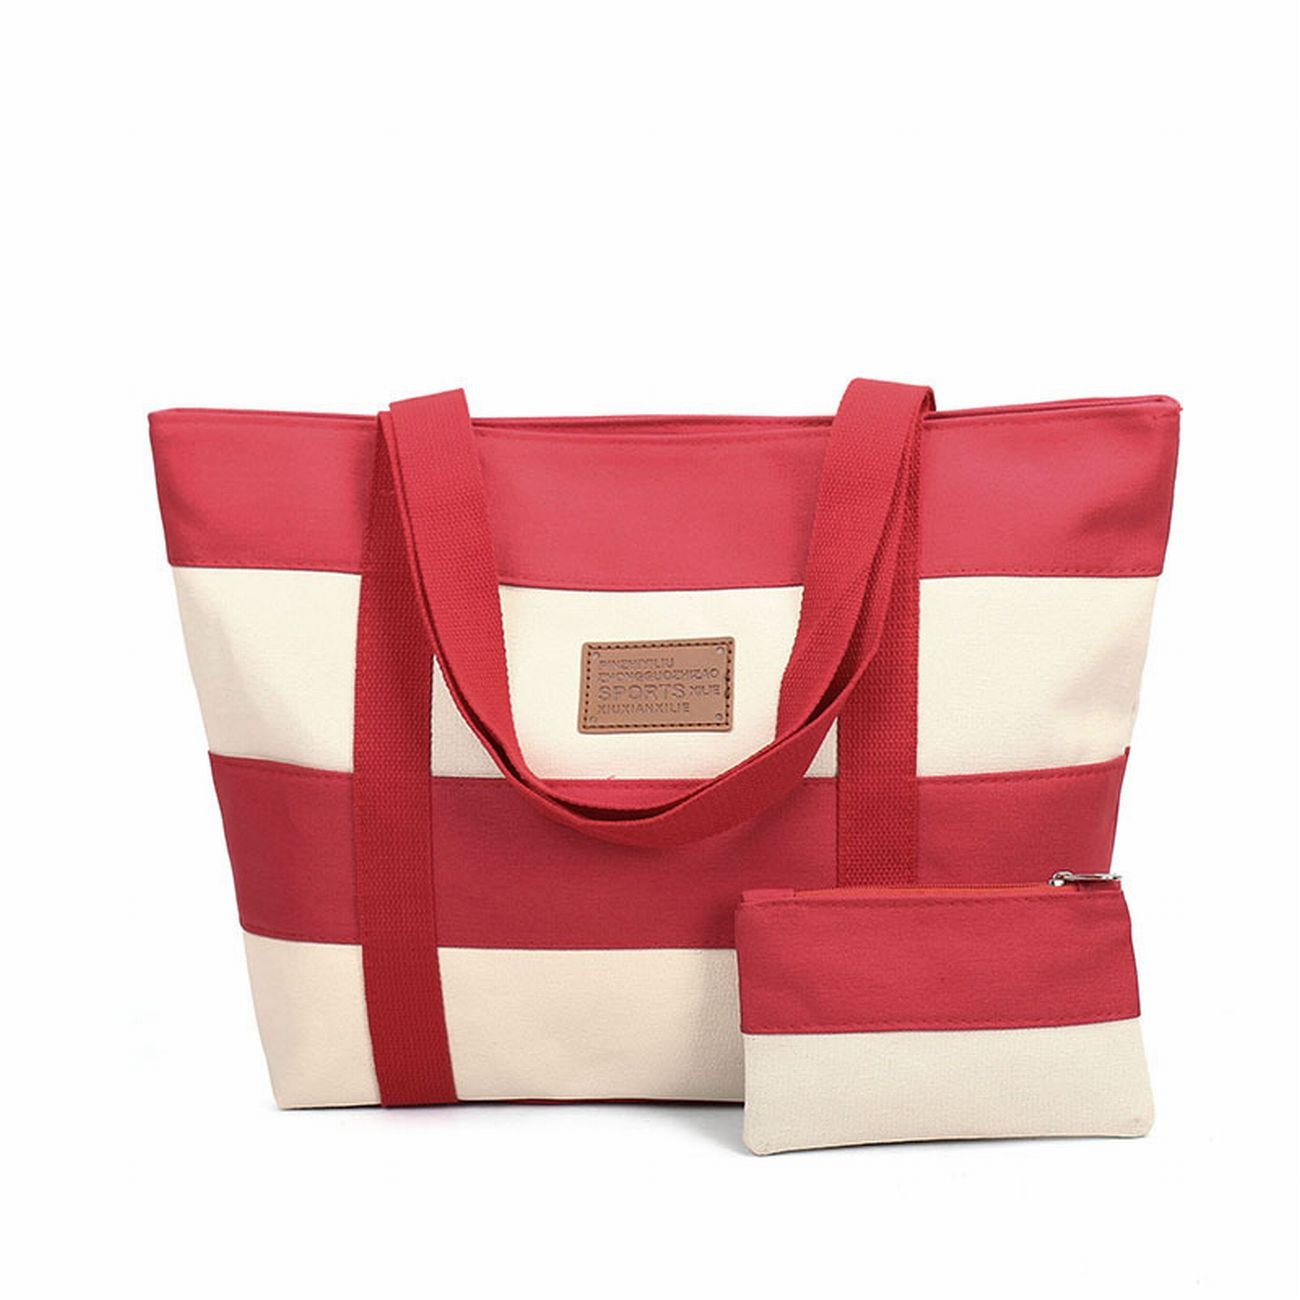 SELECTIA Women's Heavy Duty Durable Cotton Canvas Tote Shoulder Bag Washable Unisex on sale with zipper bulk organizer insert canvas with pockets and wallet set art supplies 11 (Red)